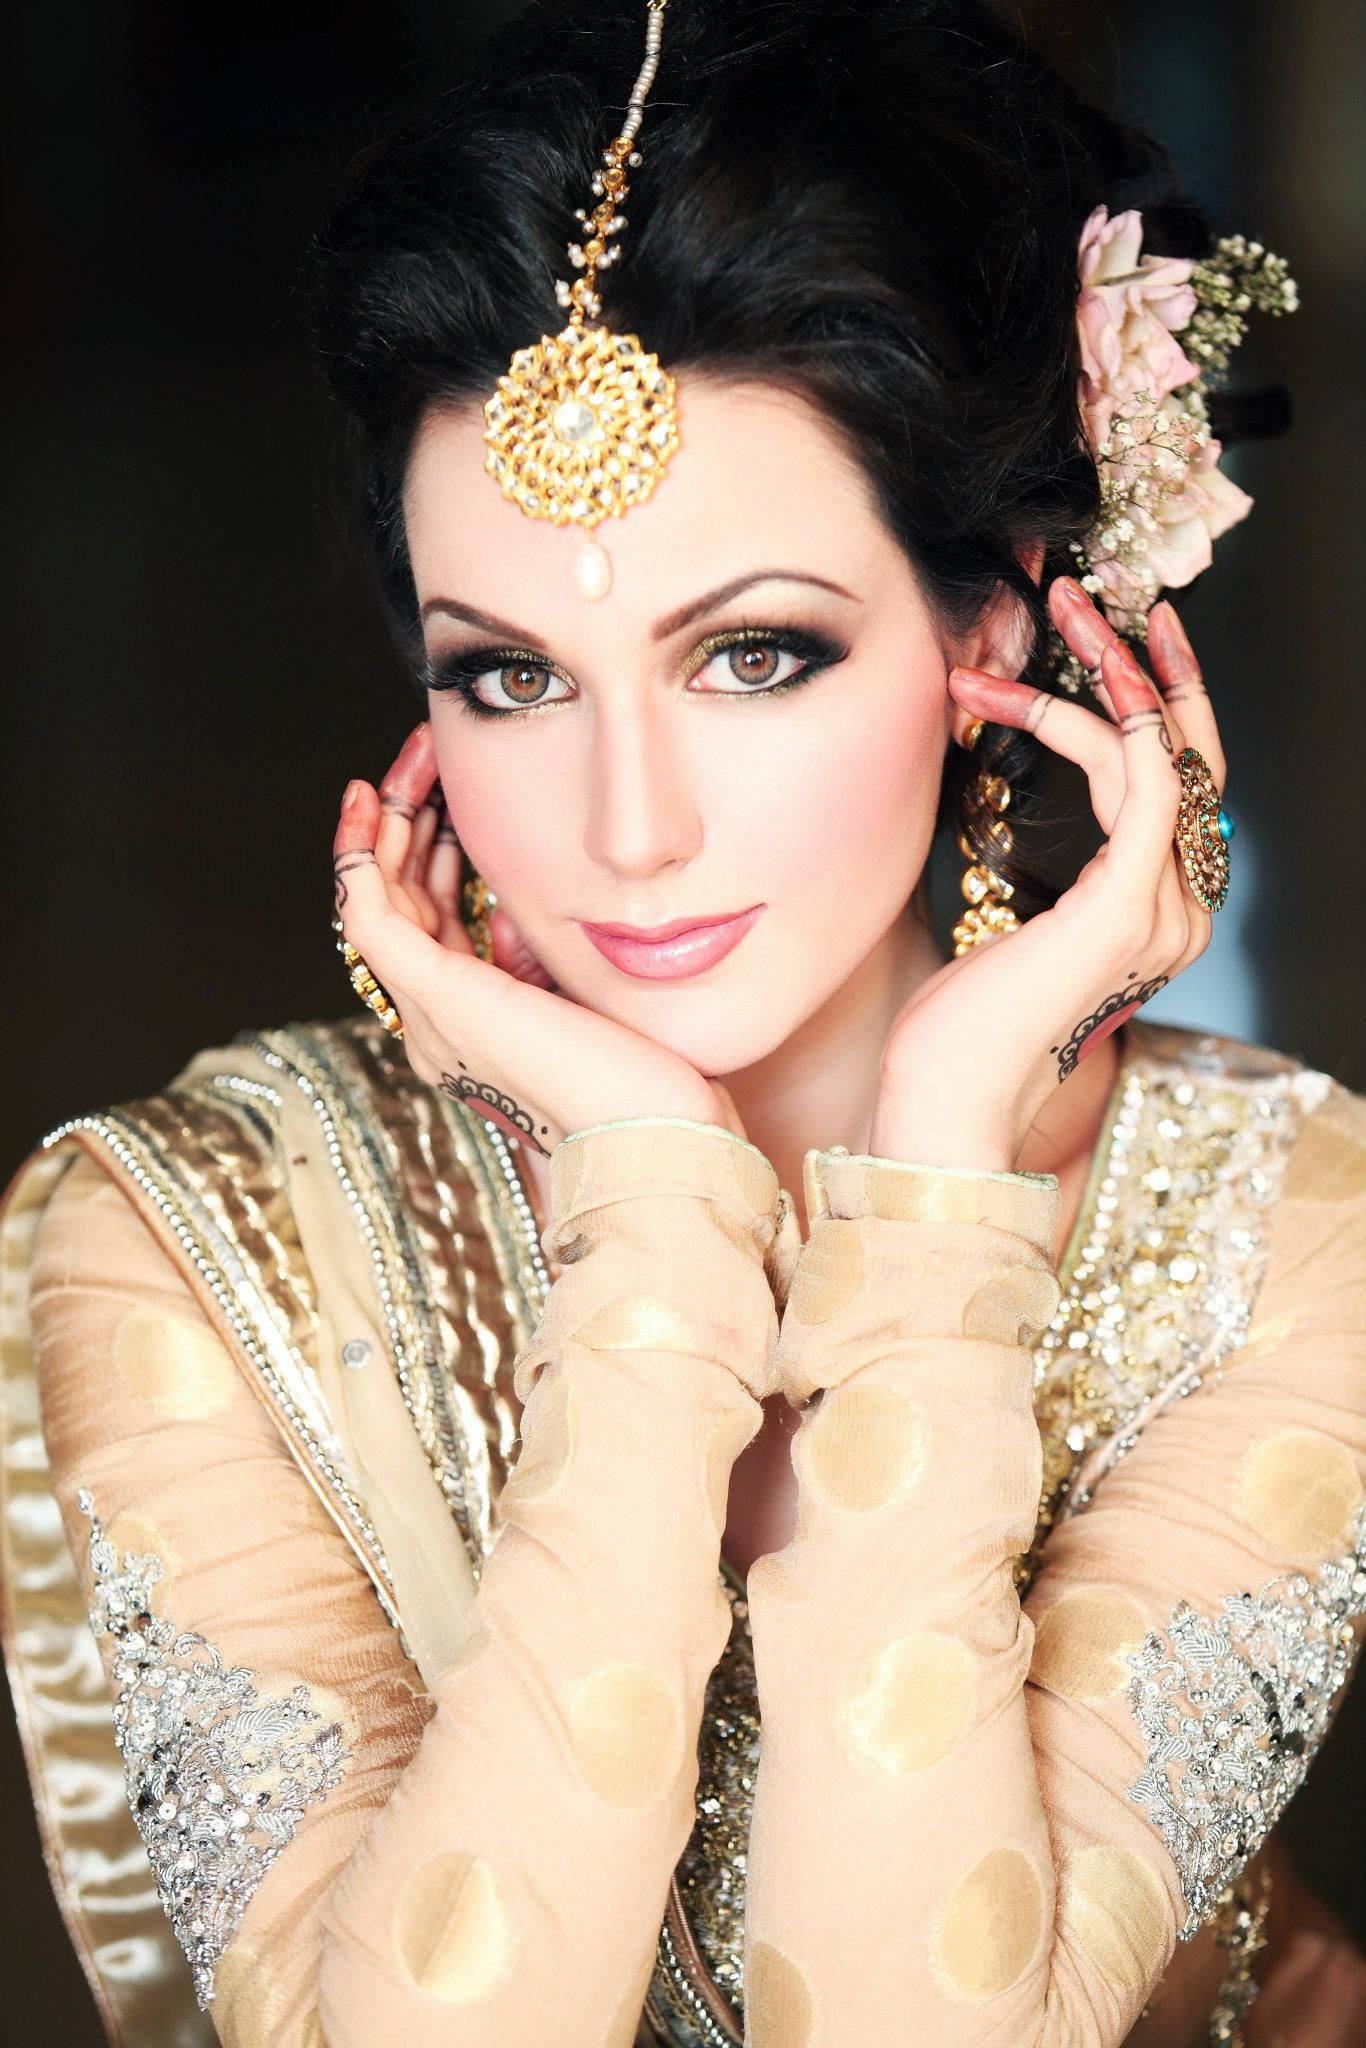 Bridal Makeup Salon Engagement Valima Mariam 39s Bridal Salon Featuring The